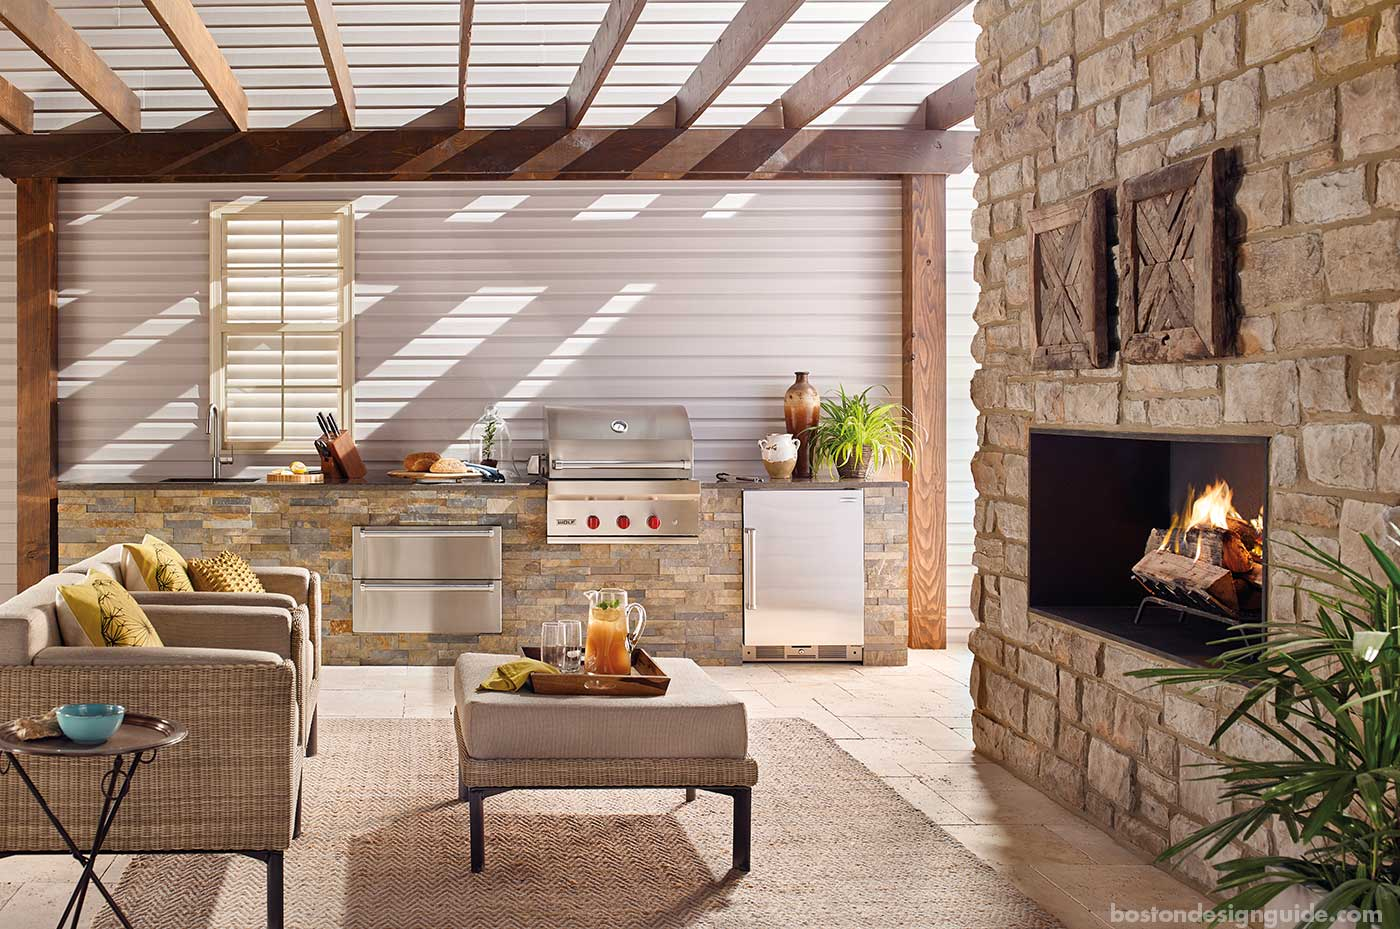 Fired up! Pros Picks for Great Grills | Boston Design Guide